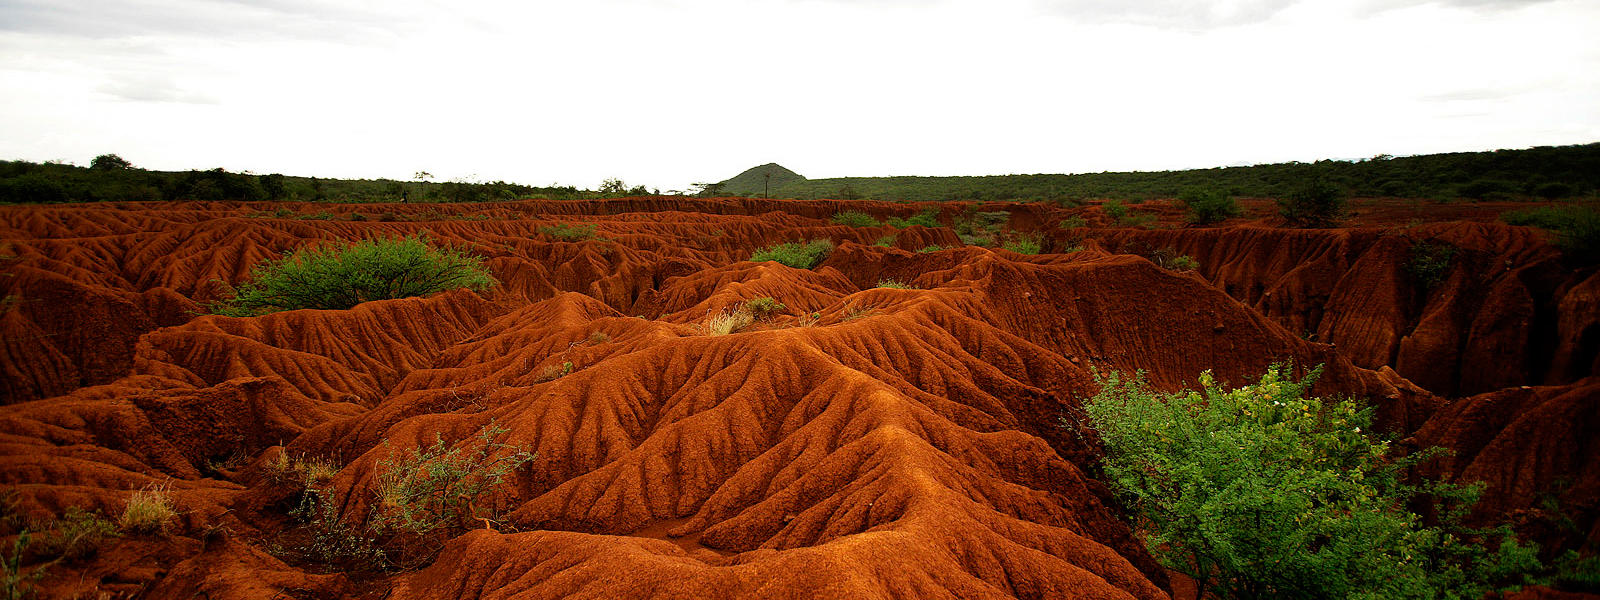 Soil erosion and degradation threats wwf for Soil resources definition